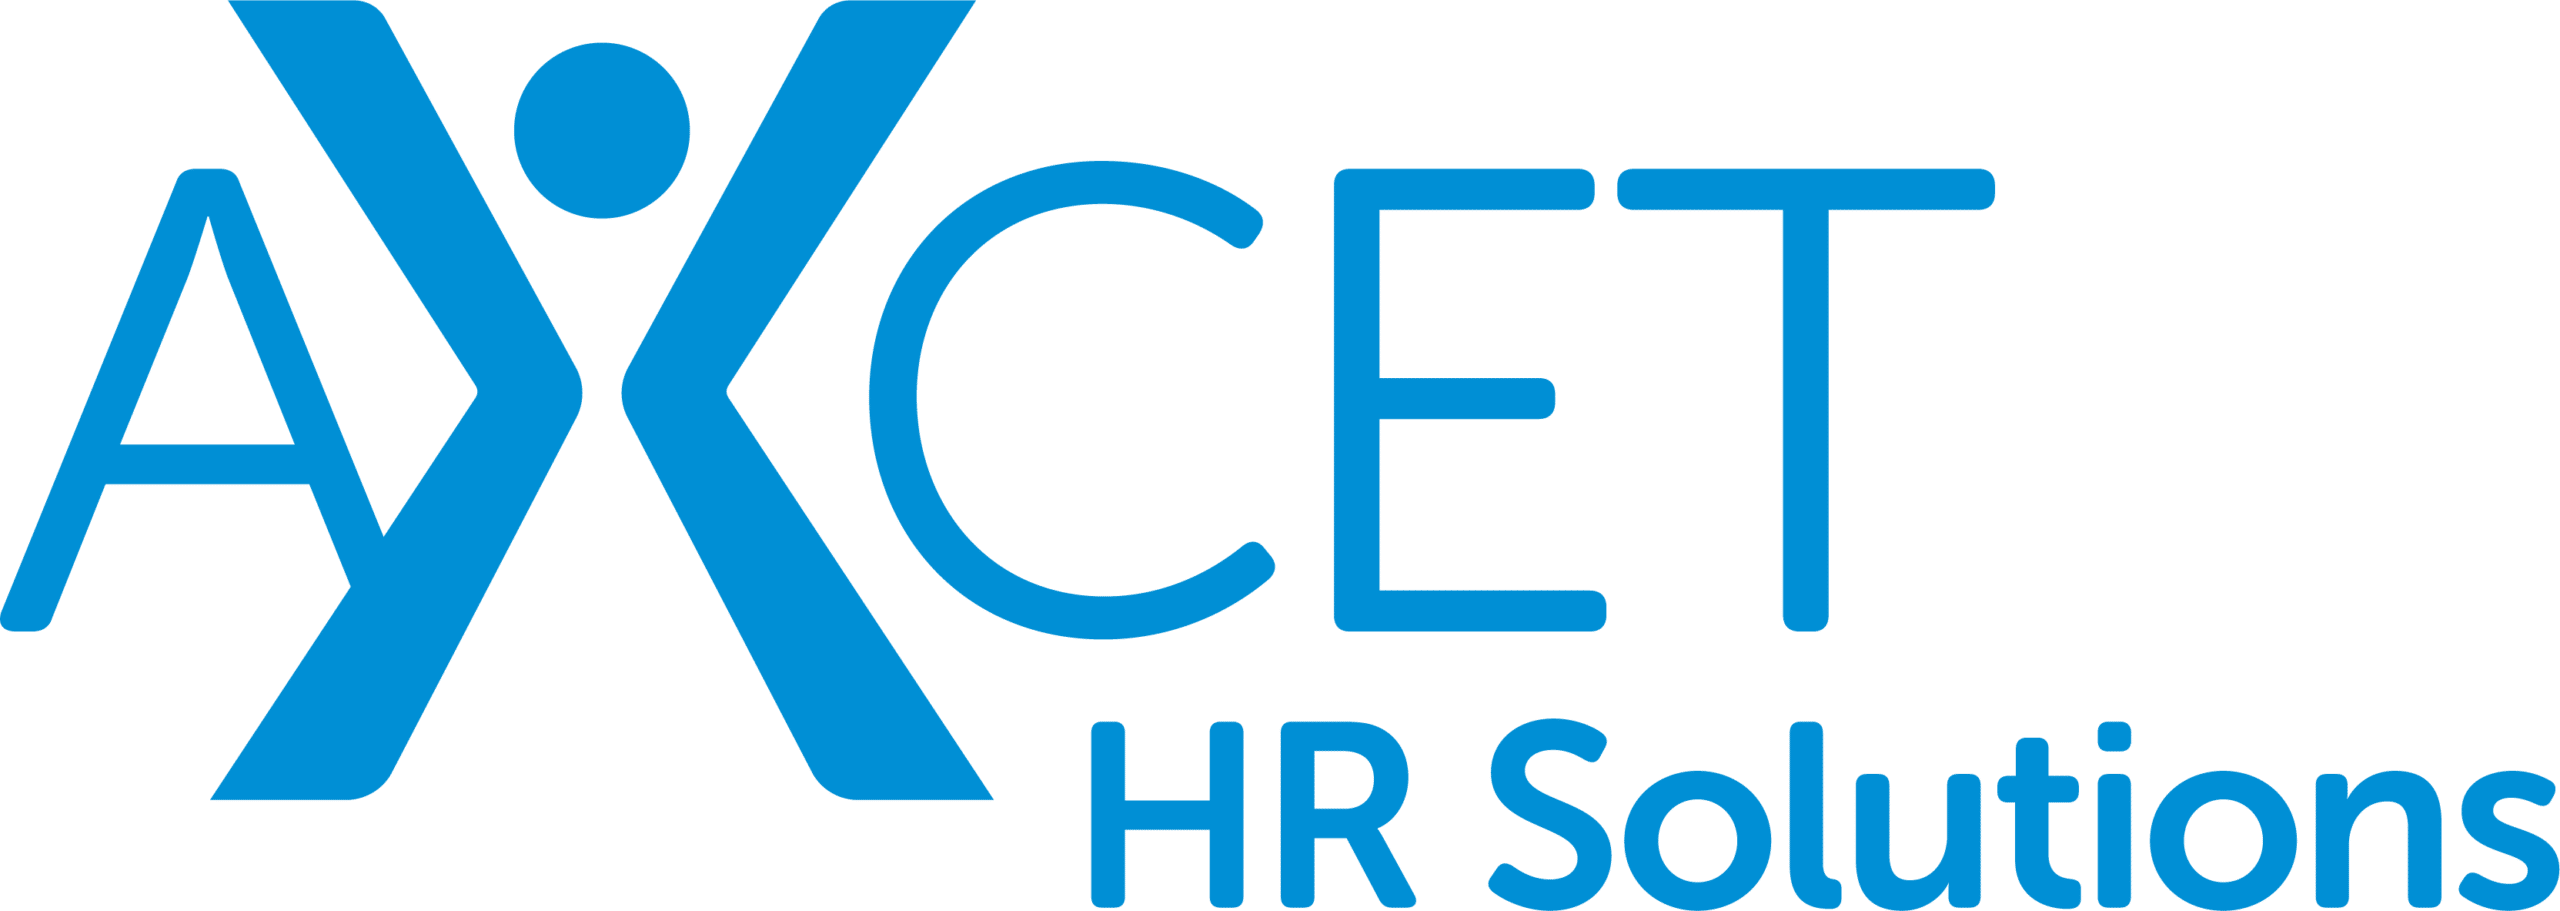 Axcet HR solutions logo